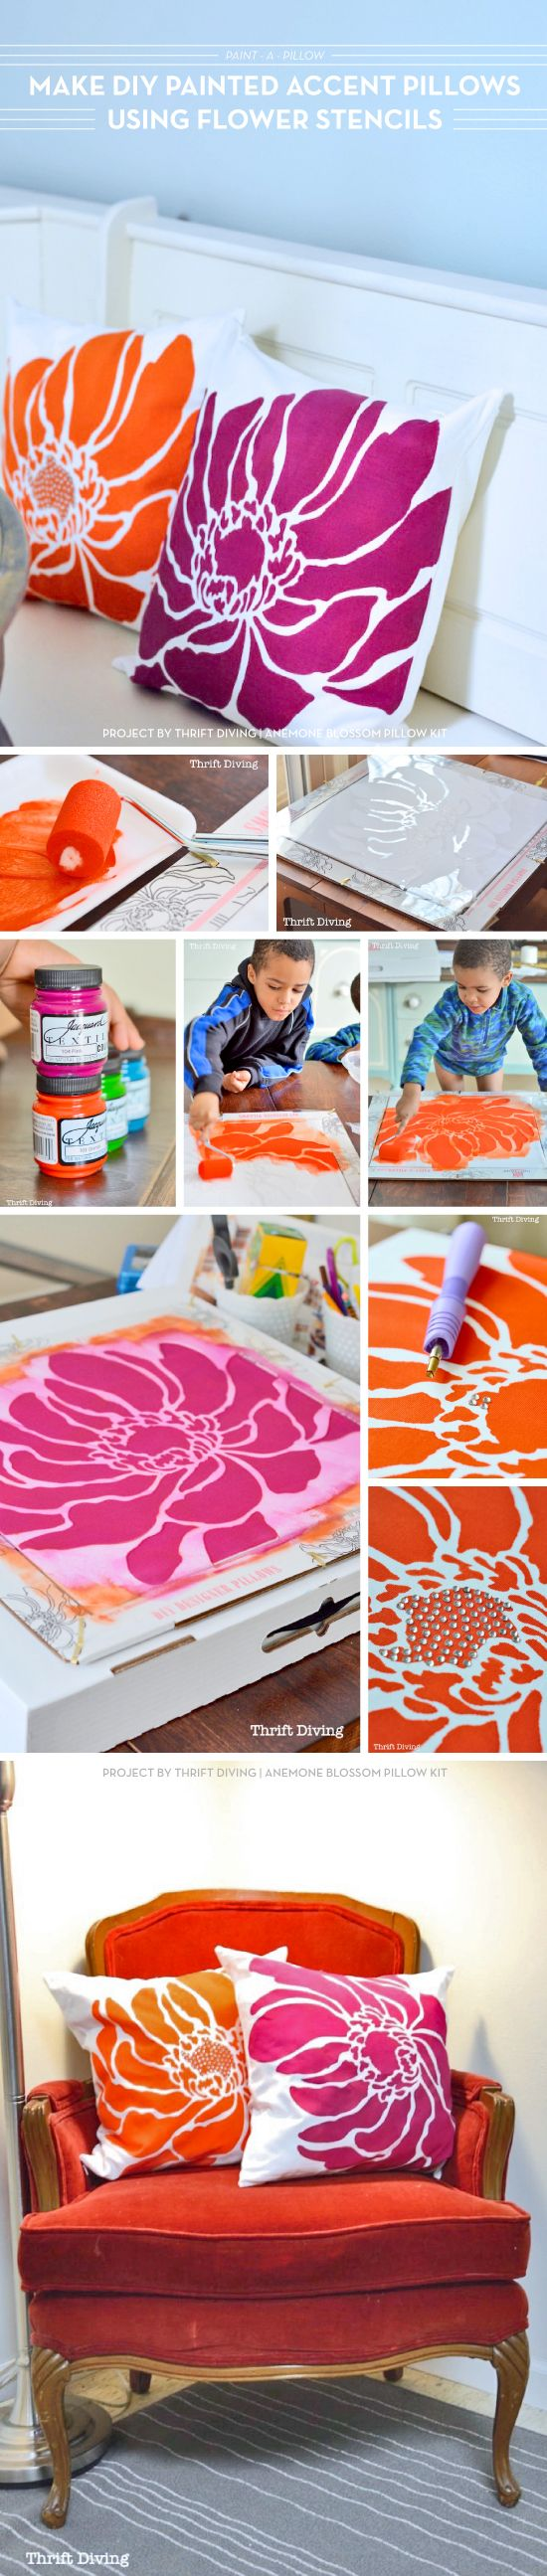 Cutting Edge Stencils shares how to DIY accent pillows using the Anemone Blossom Paint-A-Pillow kit. http://paintapillow.com/index.php/anemone-blossom-paint-a-pillow-kit.html